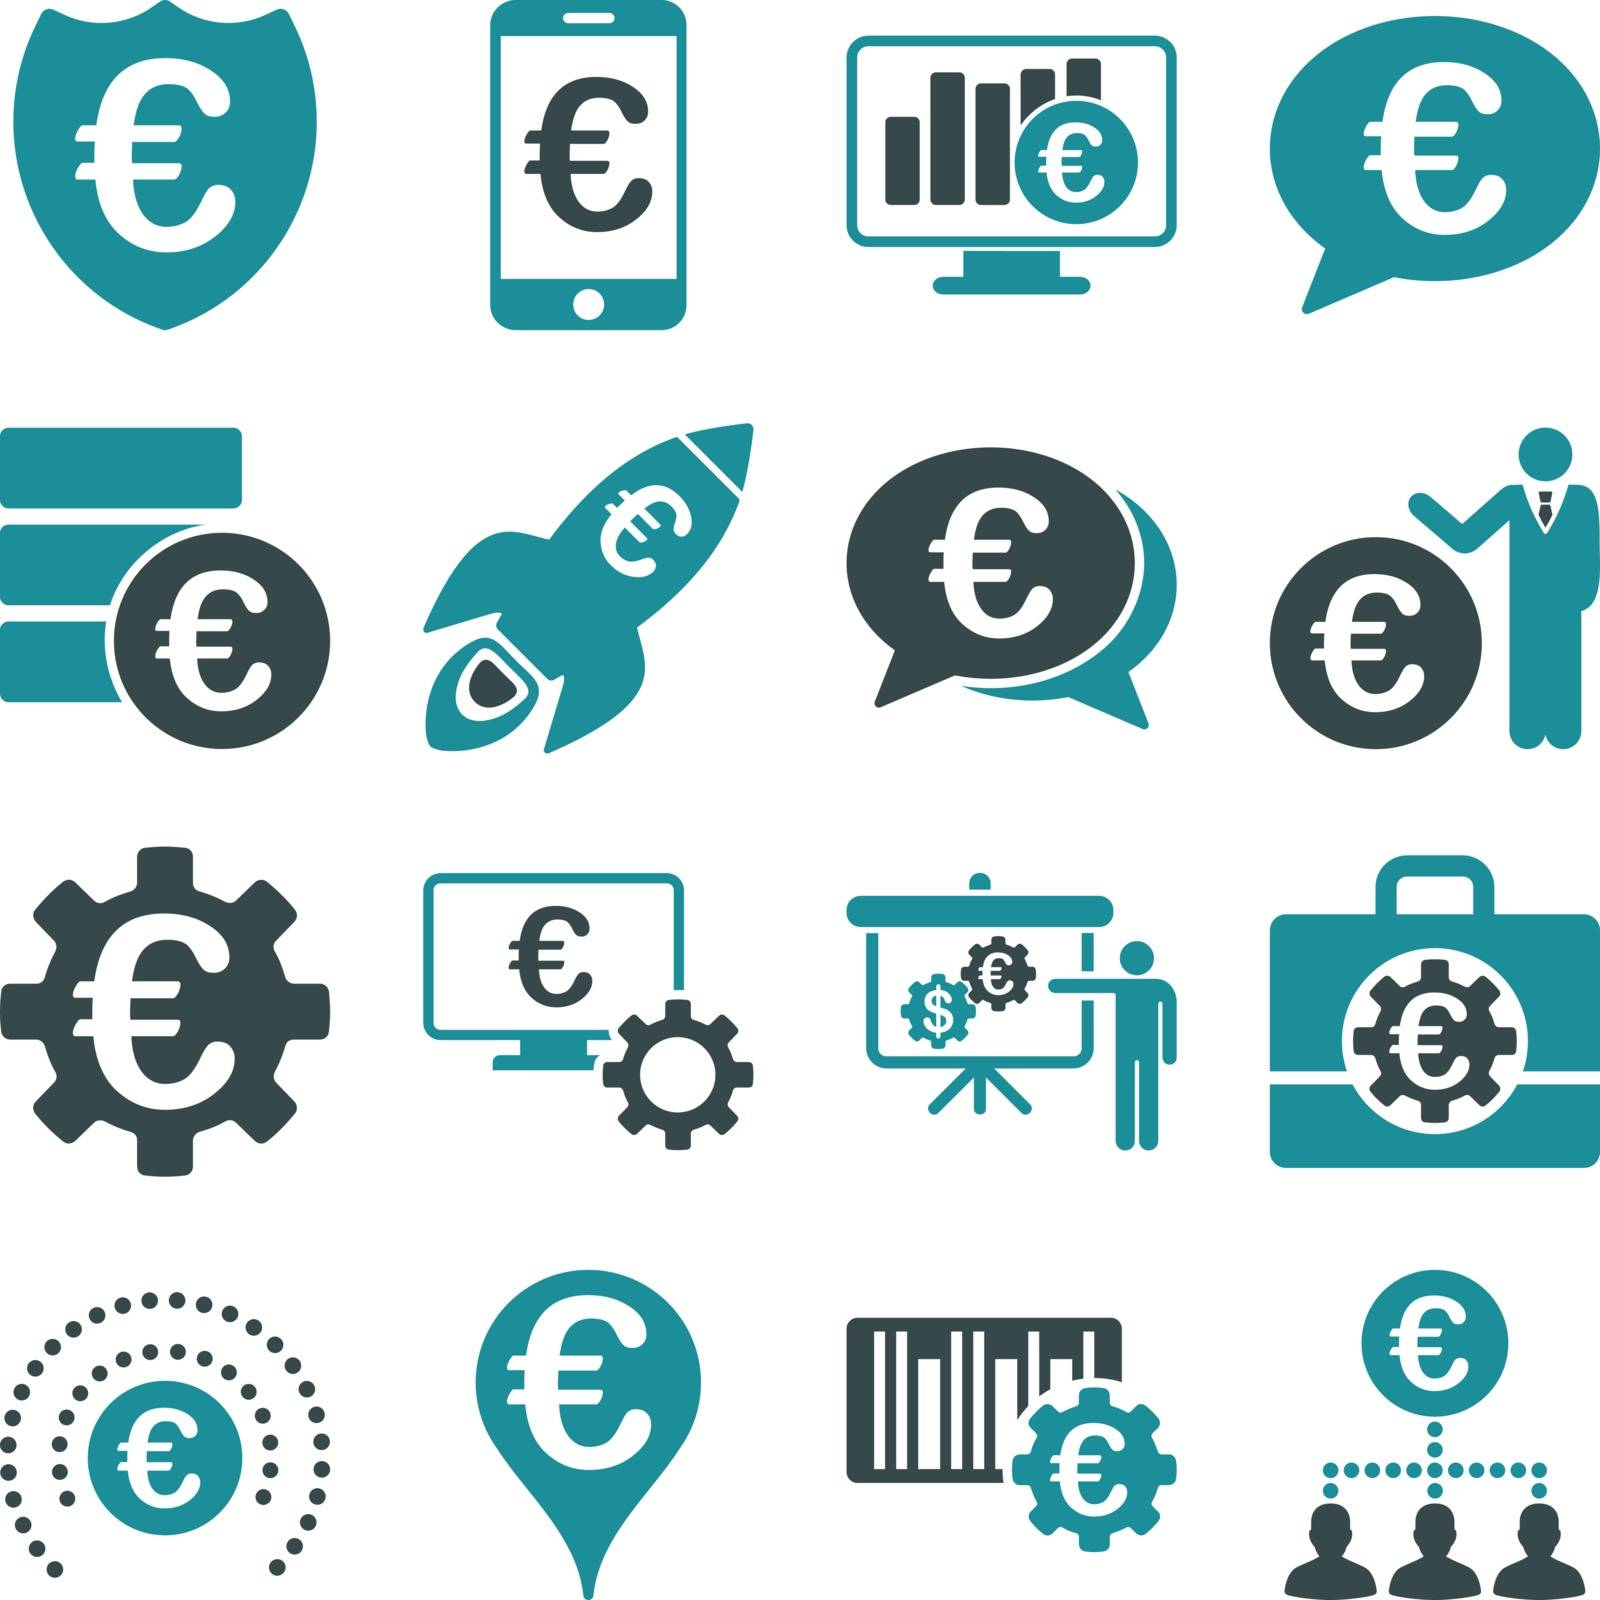 Euro banking business and service tools icons. These flat bicolor icons use soft blue. Images are isolated on a white background. Angles are rounded.